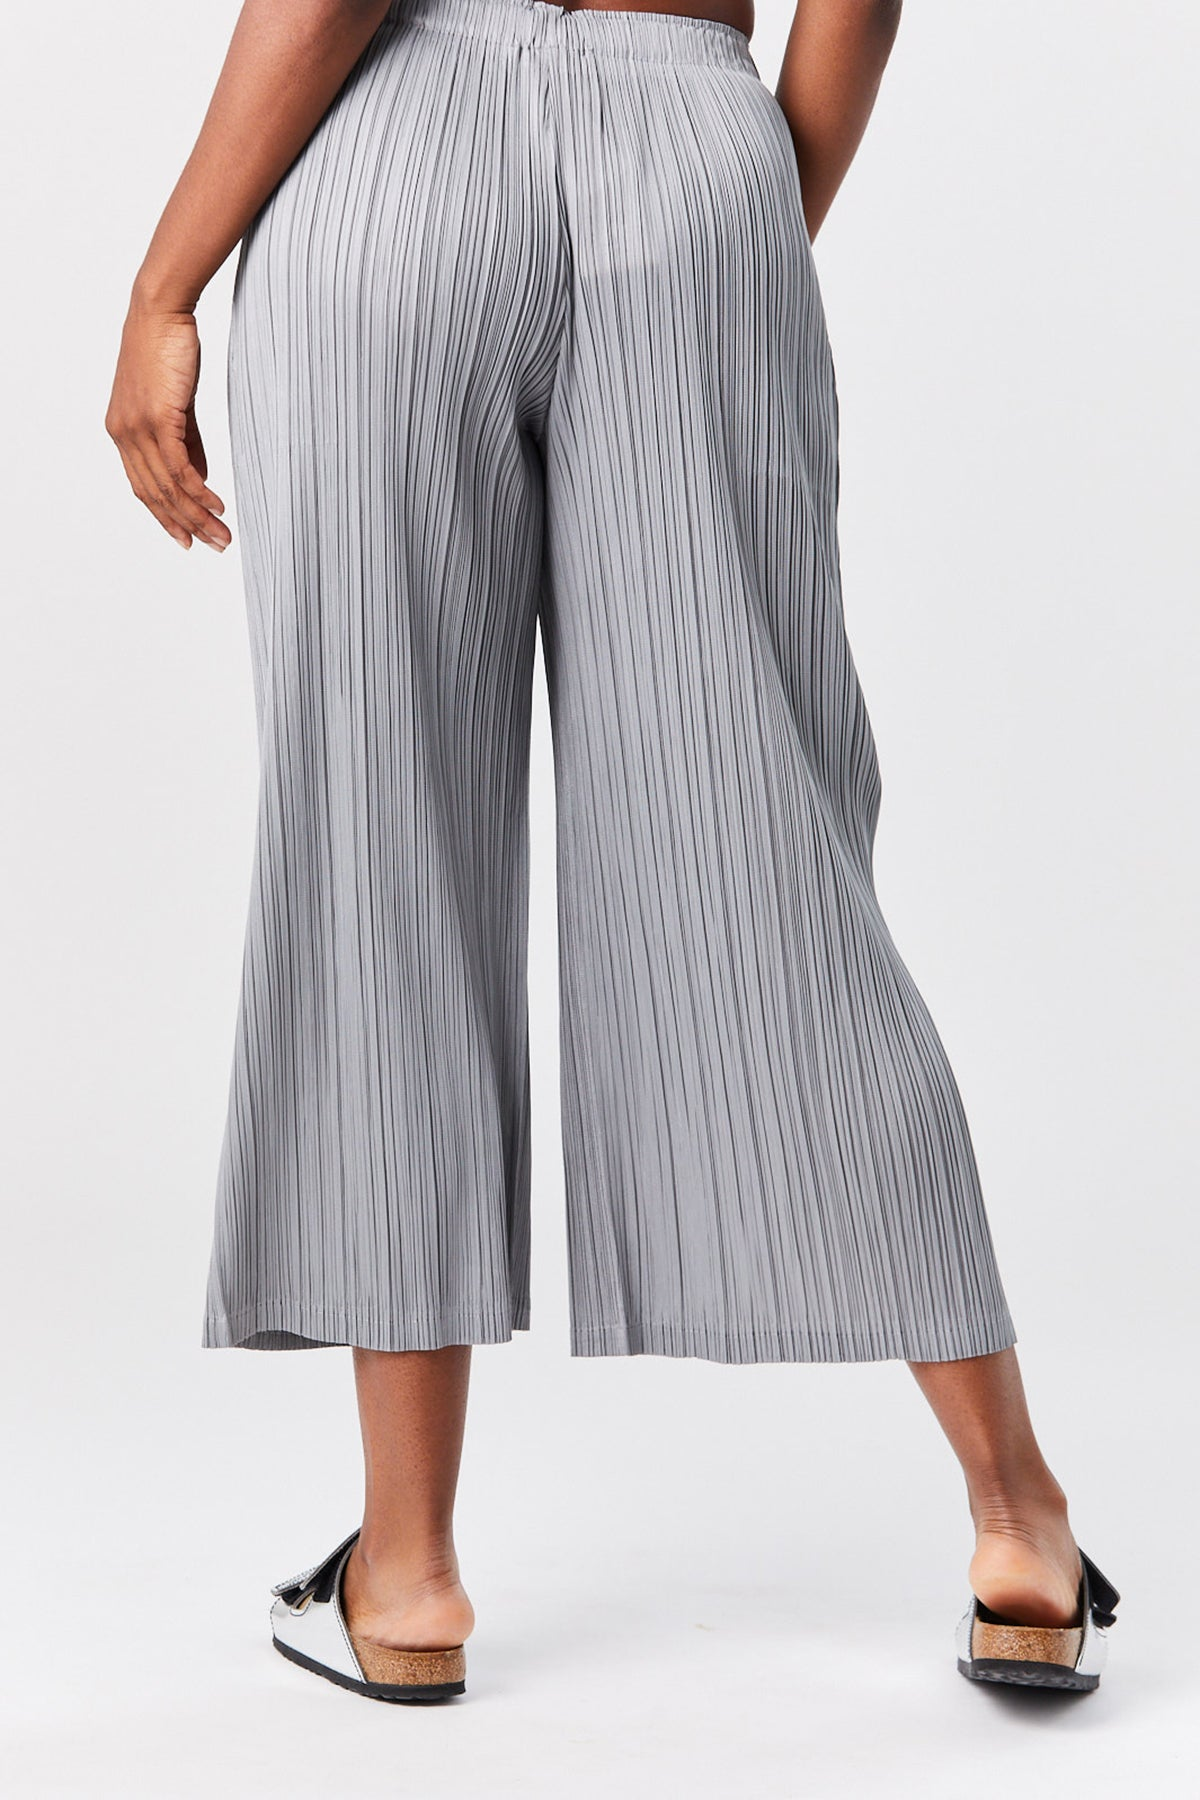 monthly colors pant, grey